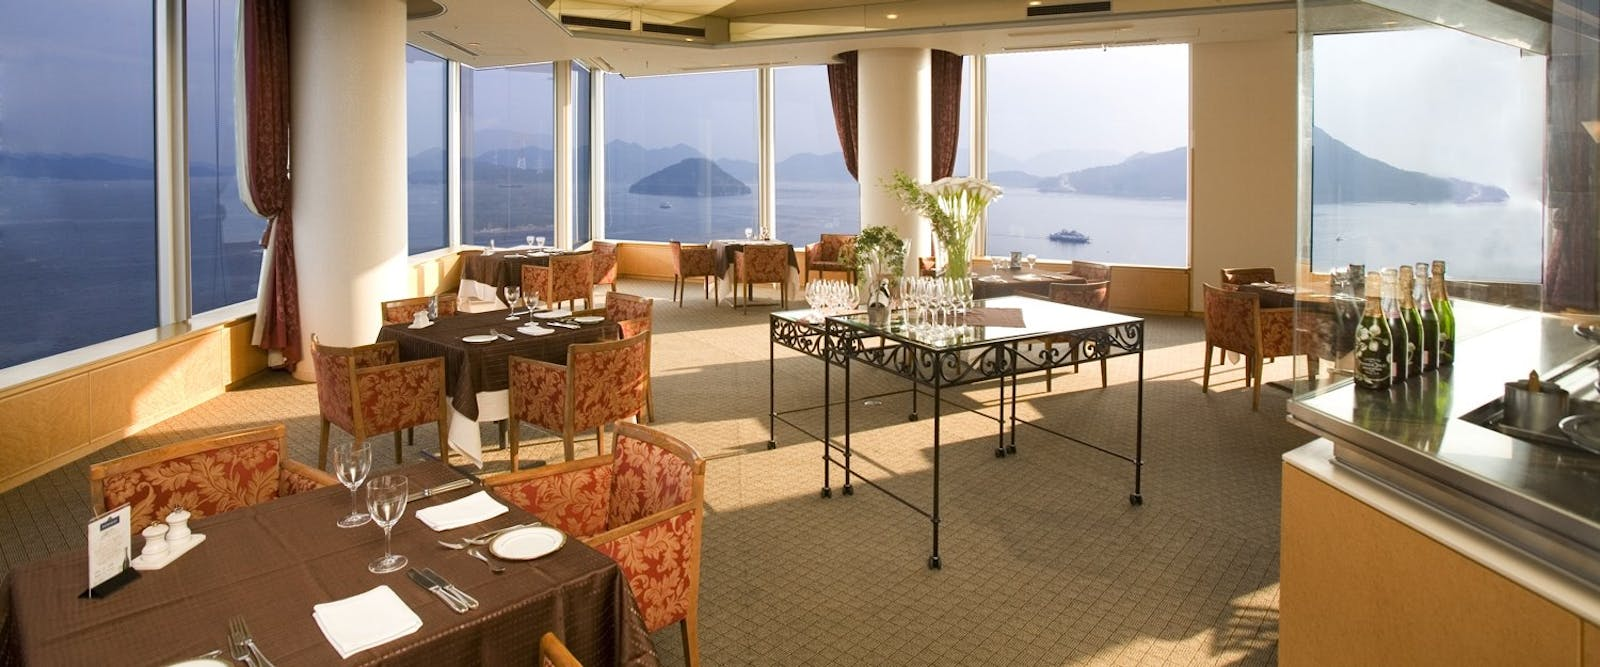 Restaurant at Grand Prince Hotel Hiroshima, Japan